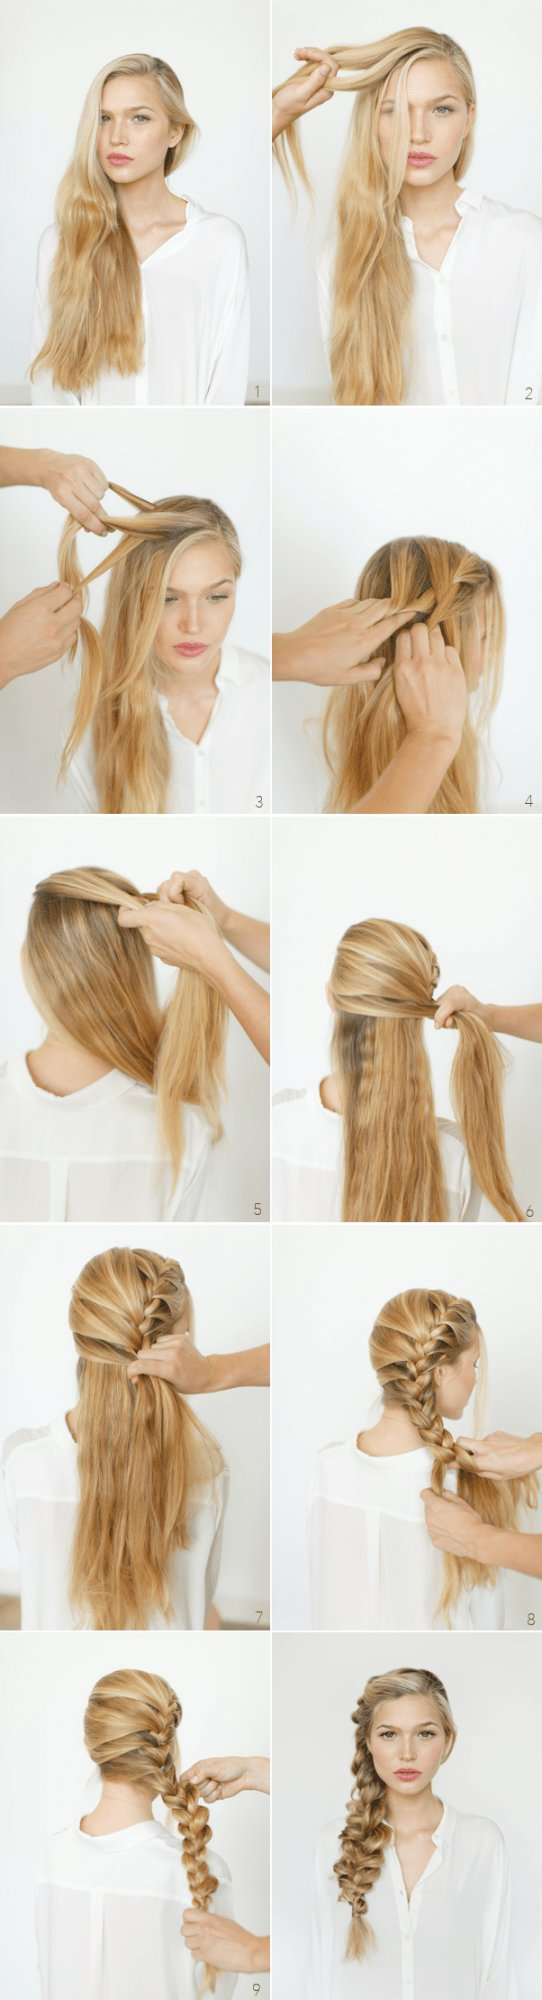 New 18 Easy Step By Step Tutorials For Perfect Hairstyles Ideas With Pictures